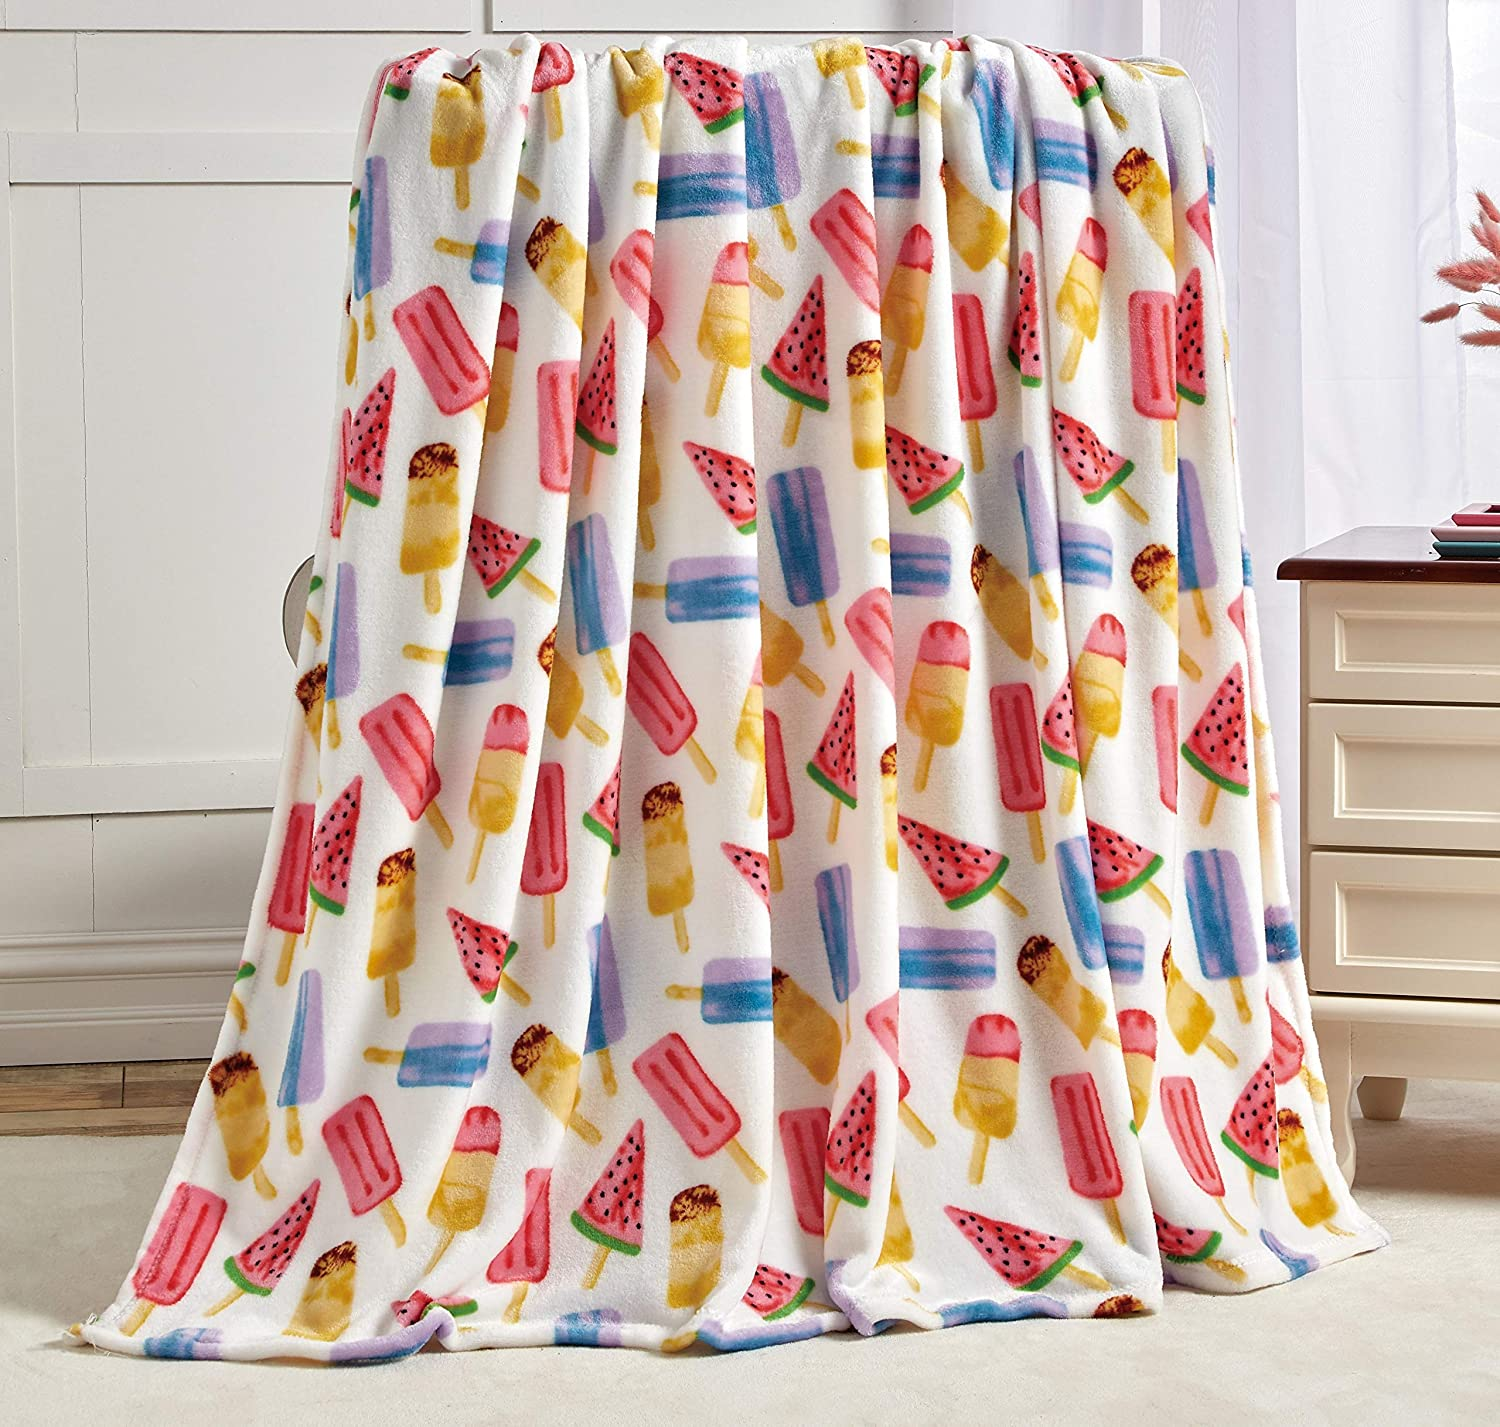 Summertime Fun by Decor&More Extra Soft Throw Blanket (50